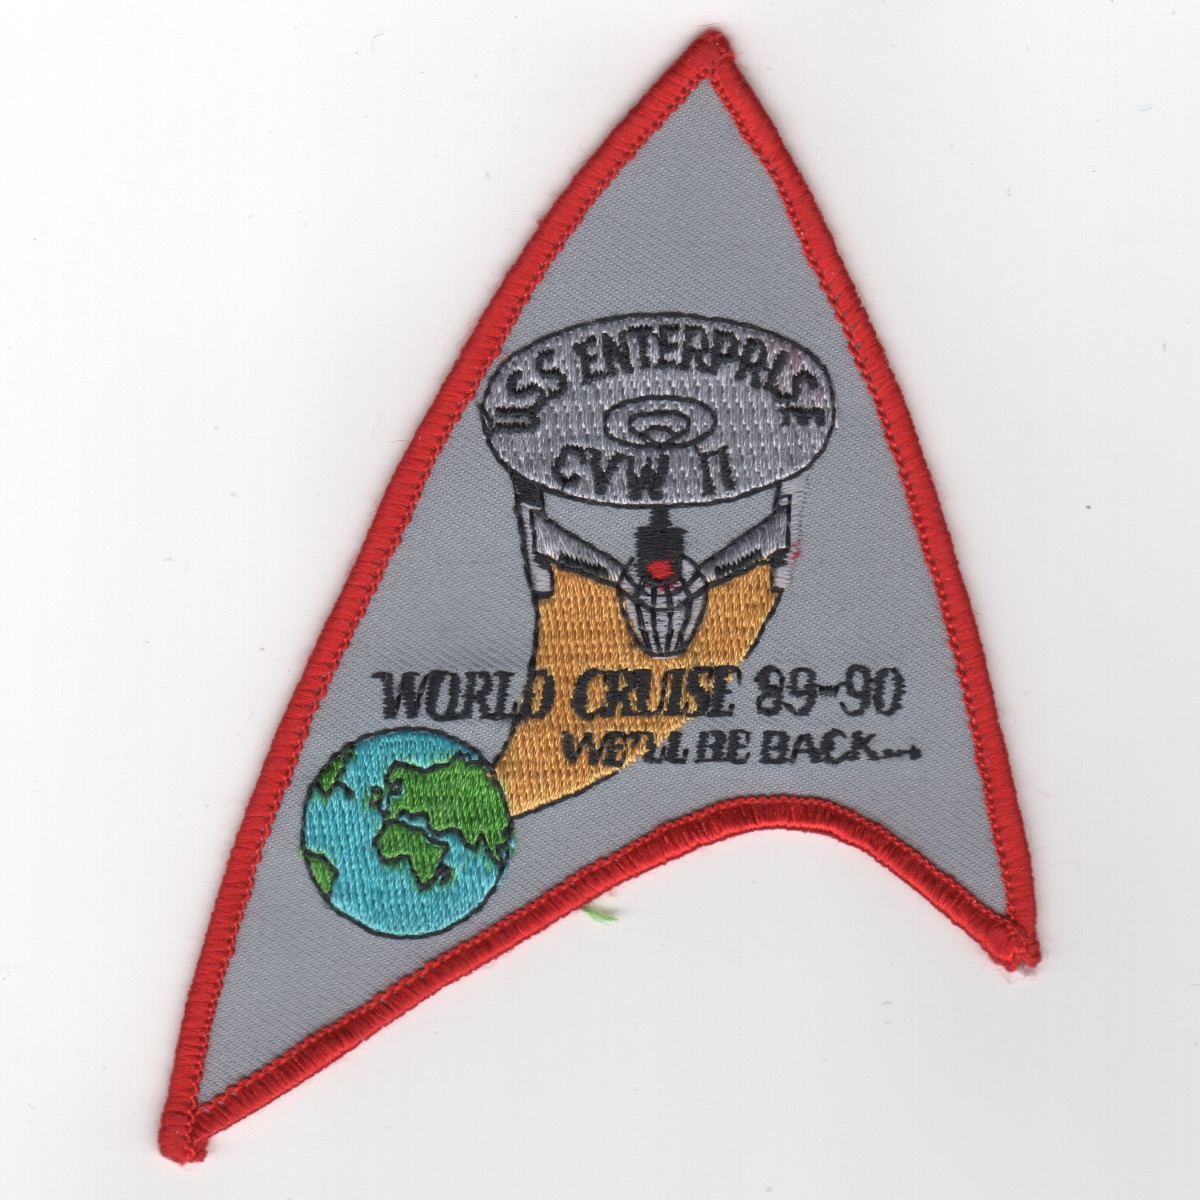 422) CVN-65 1989-1990 'WORLD CRUISE' Patch